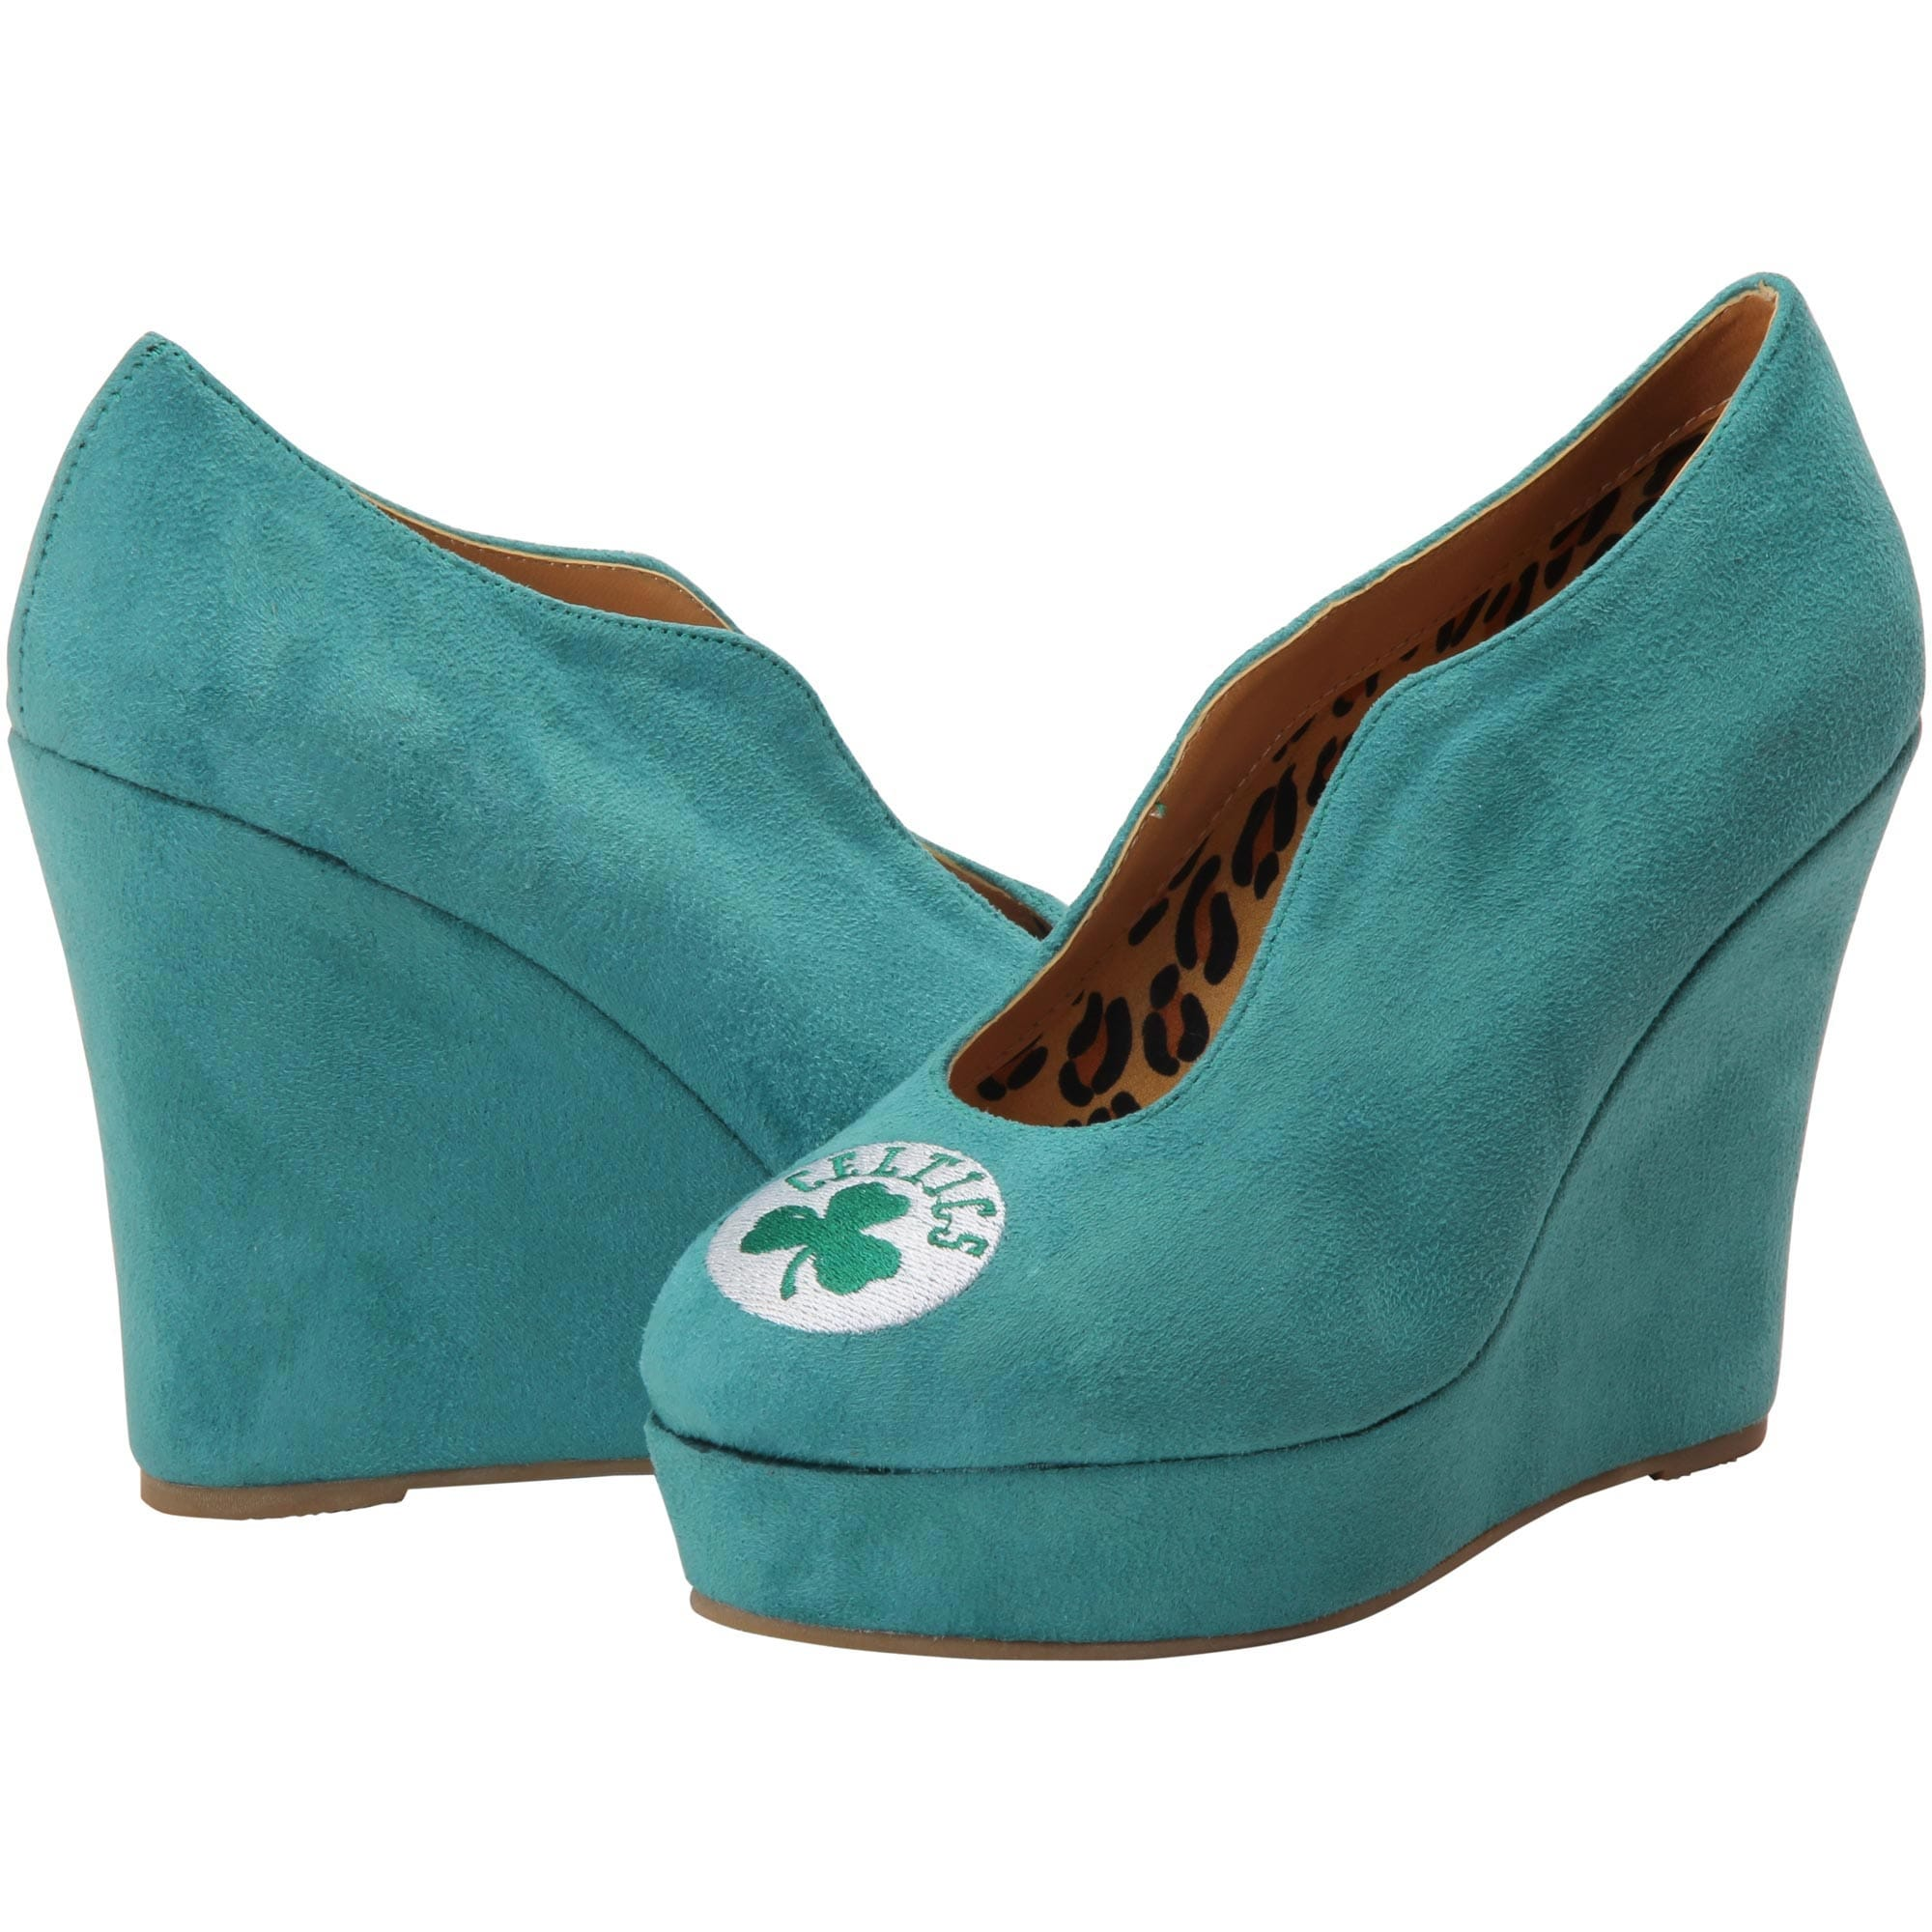 Boston Celtics Cuce Shoes Women's Spirited Wedge Pumps - Kelly Green